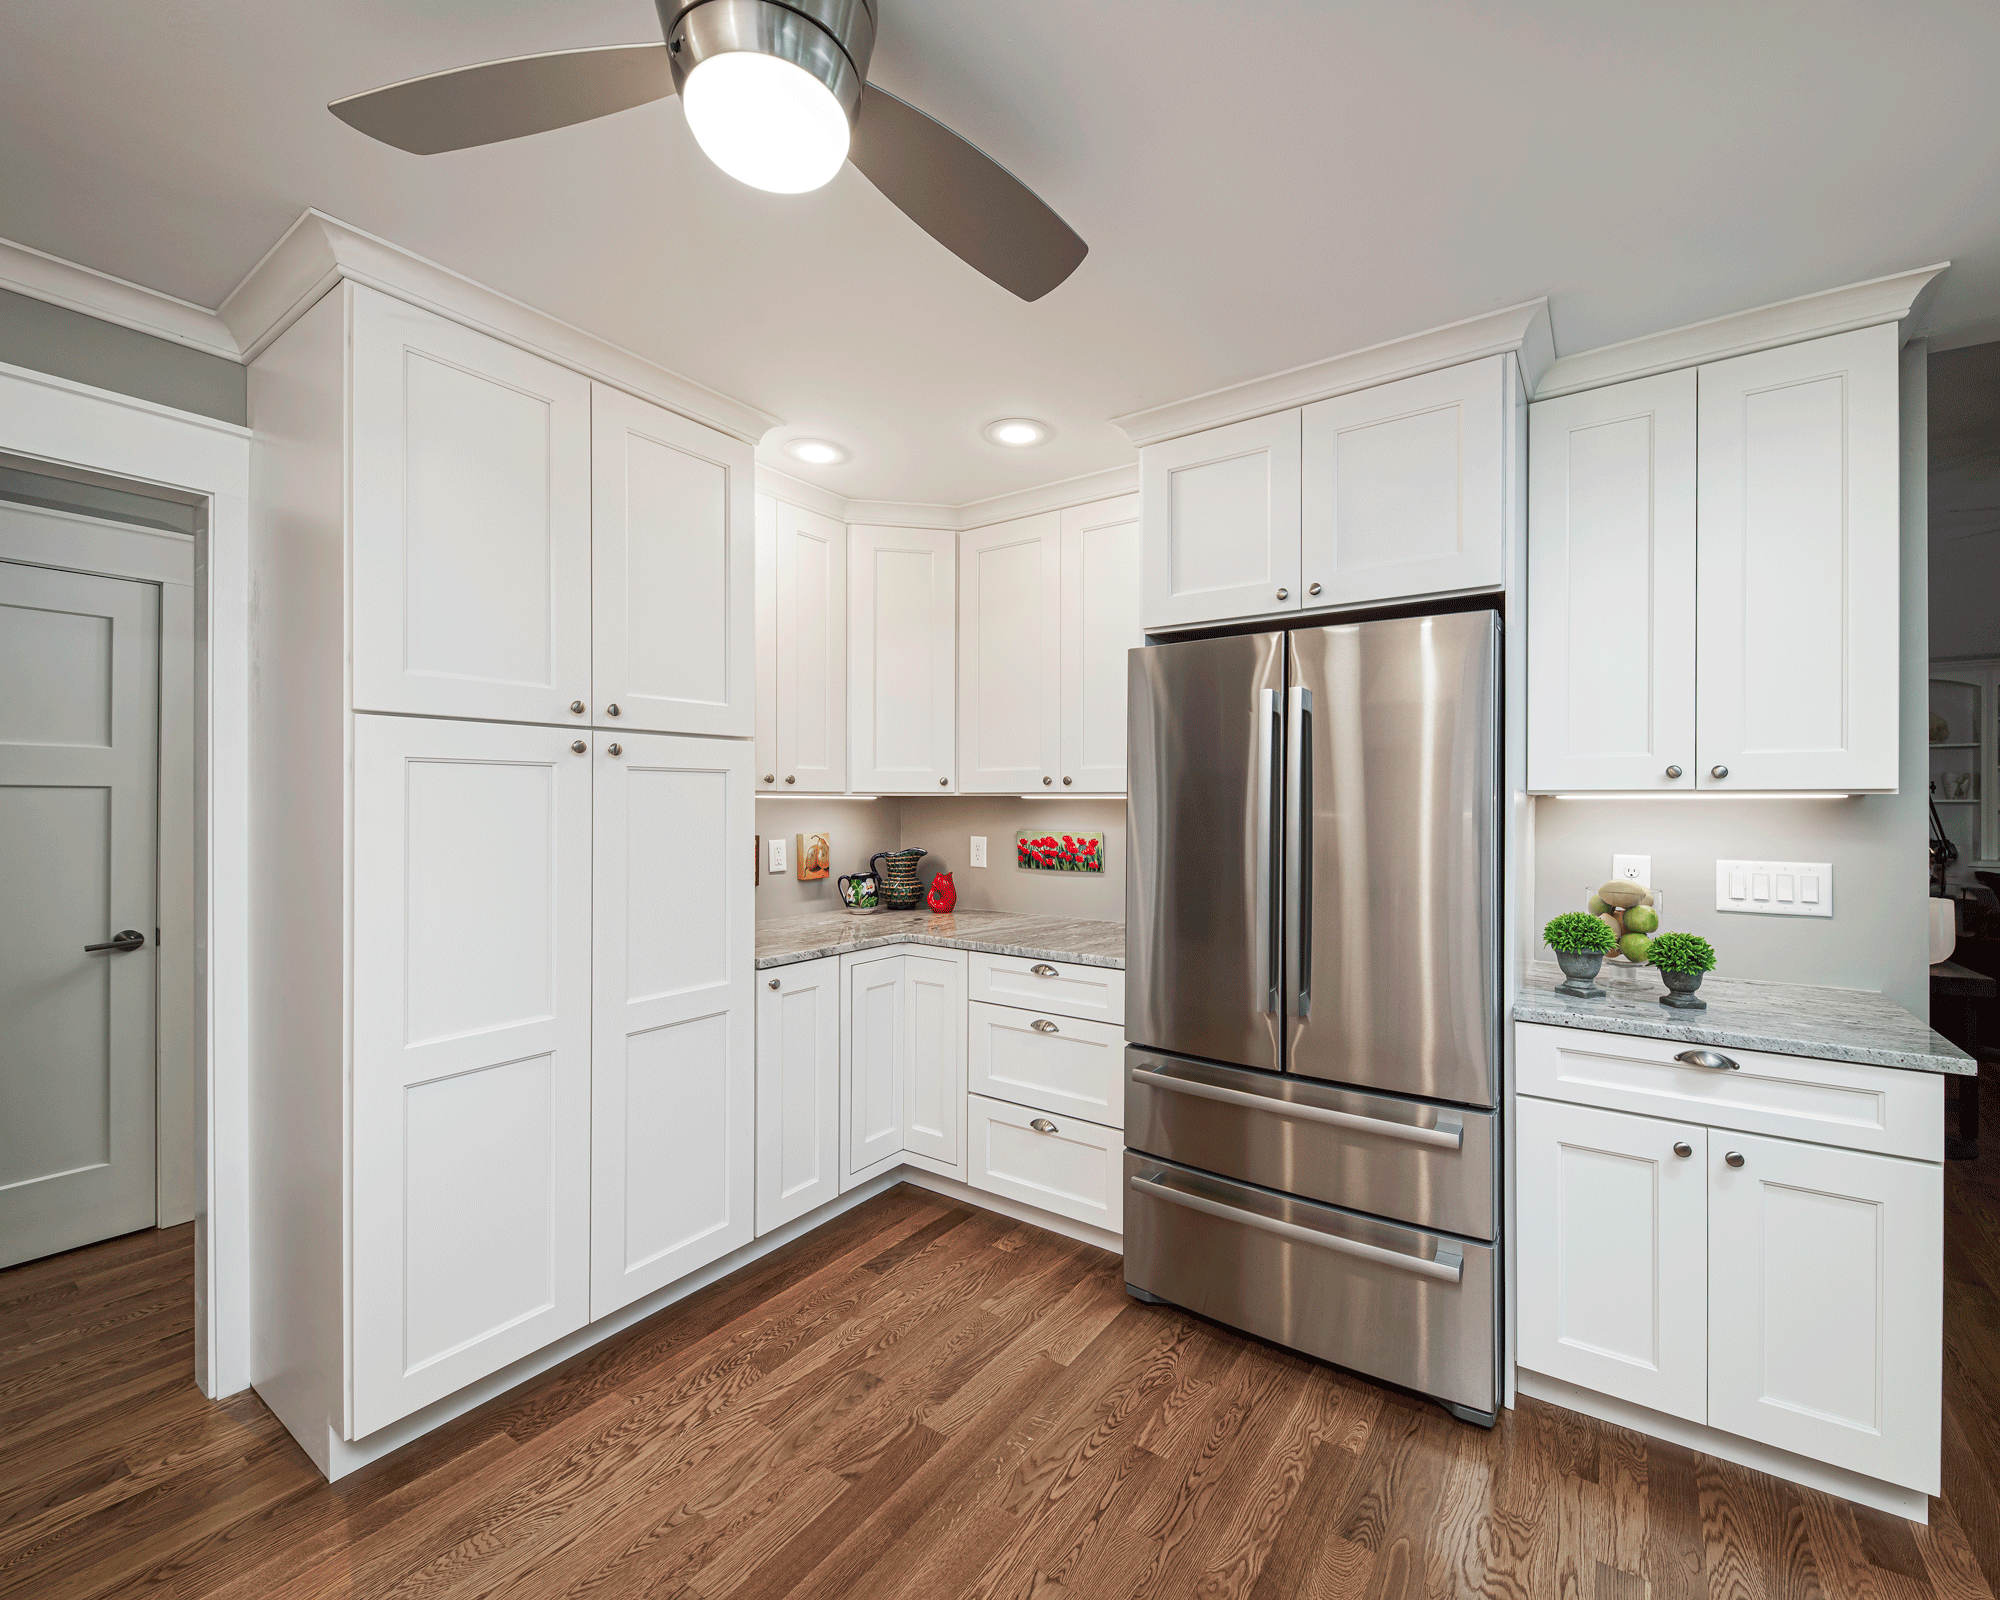 kitchen remodel with lighting, island, cabinets, seating, and decor